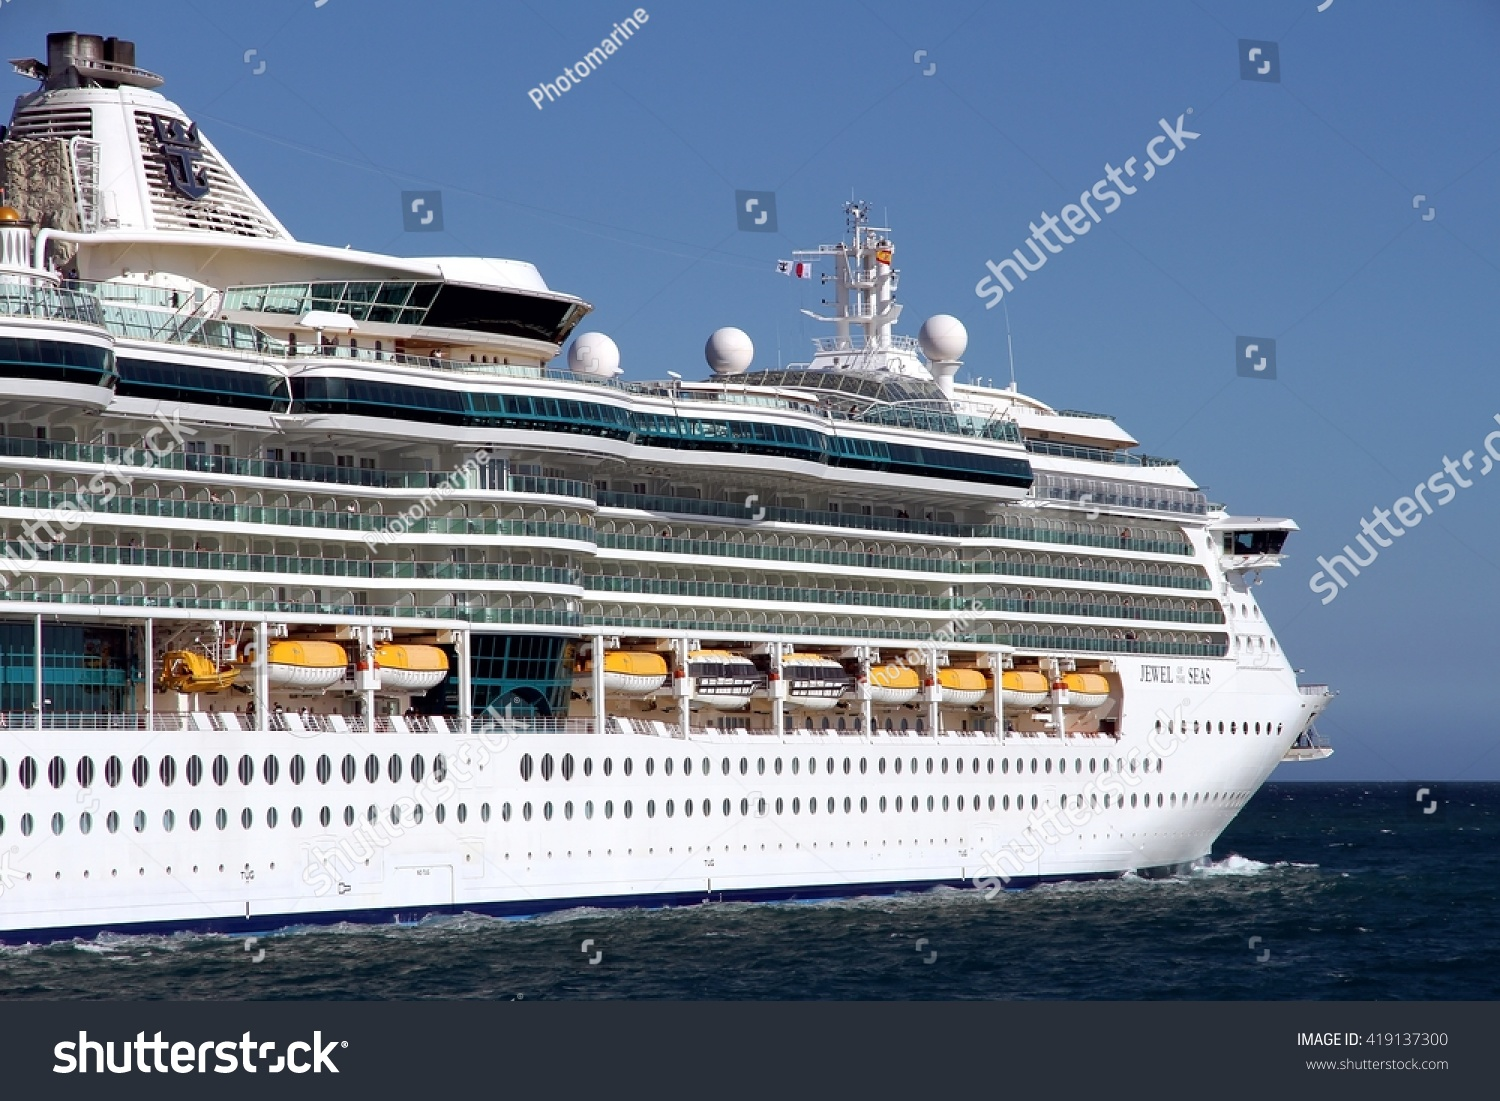 Alicante Spain May Starboard Side Stock Photo - Port or starboard side of cruise ship